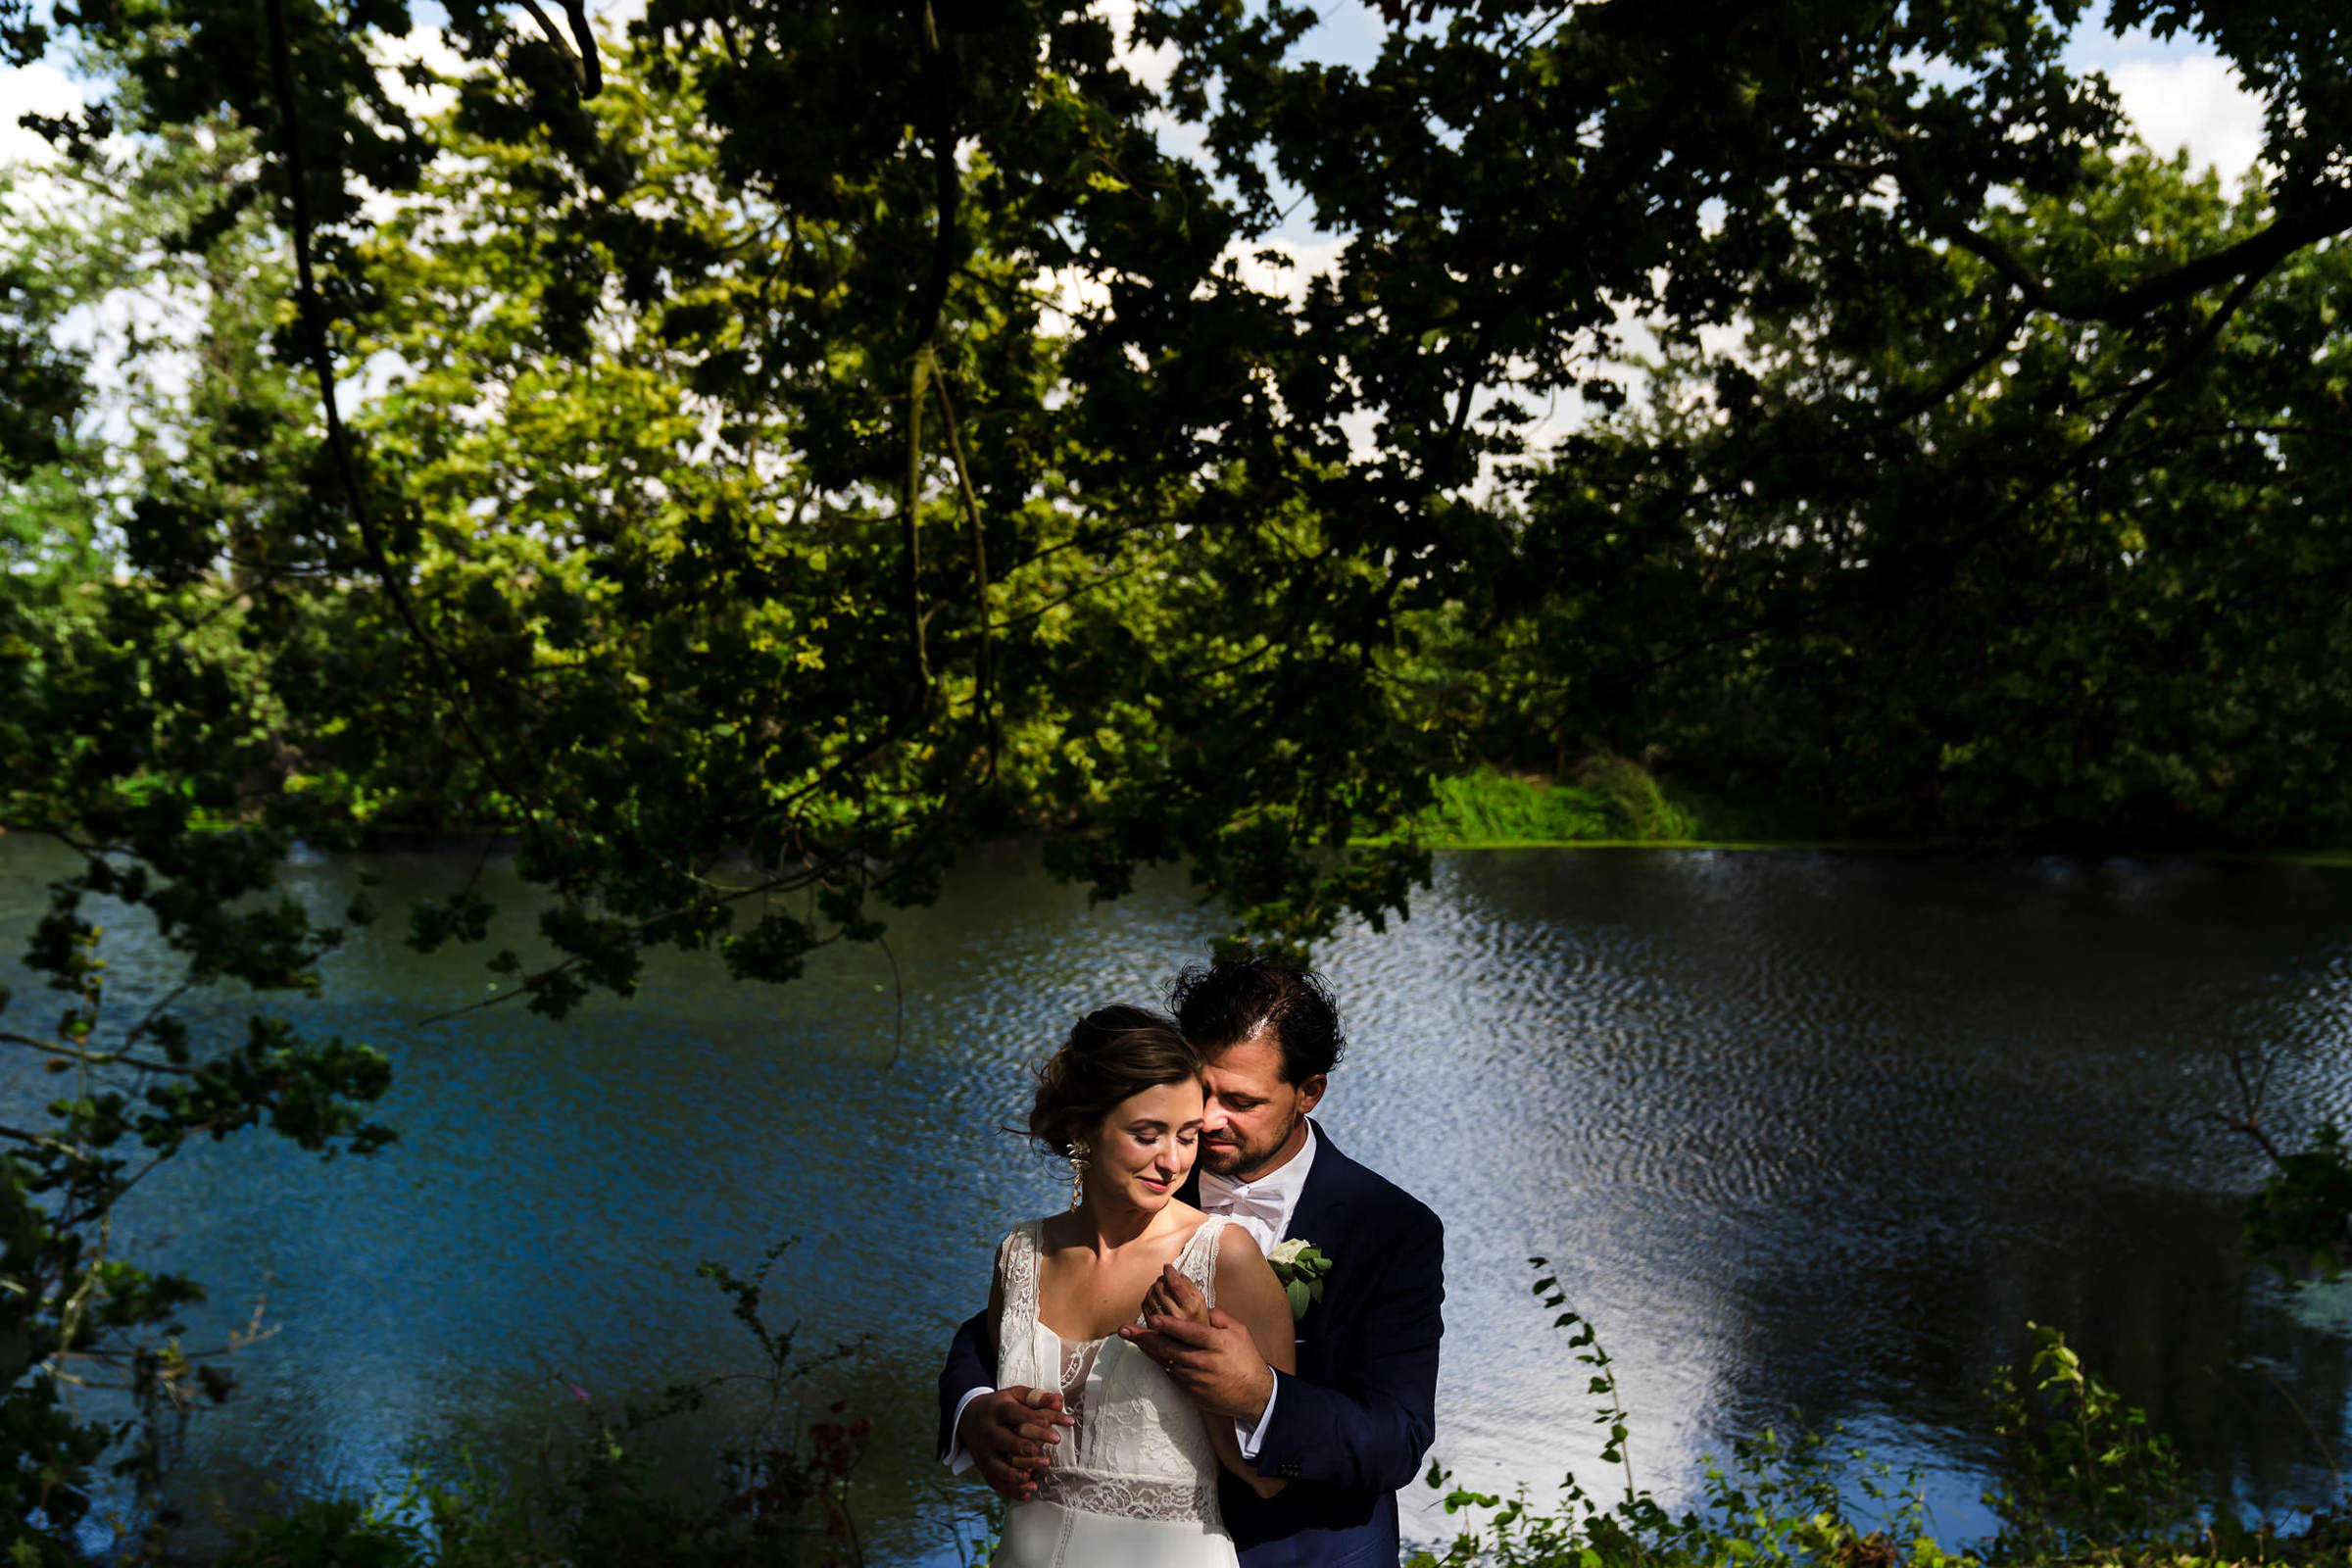 Portrait of bride and groom in a spot of afternoon light, photo by Philippe Swiggers